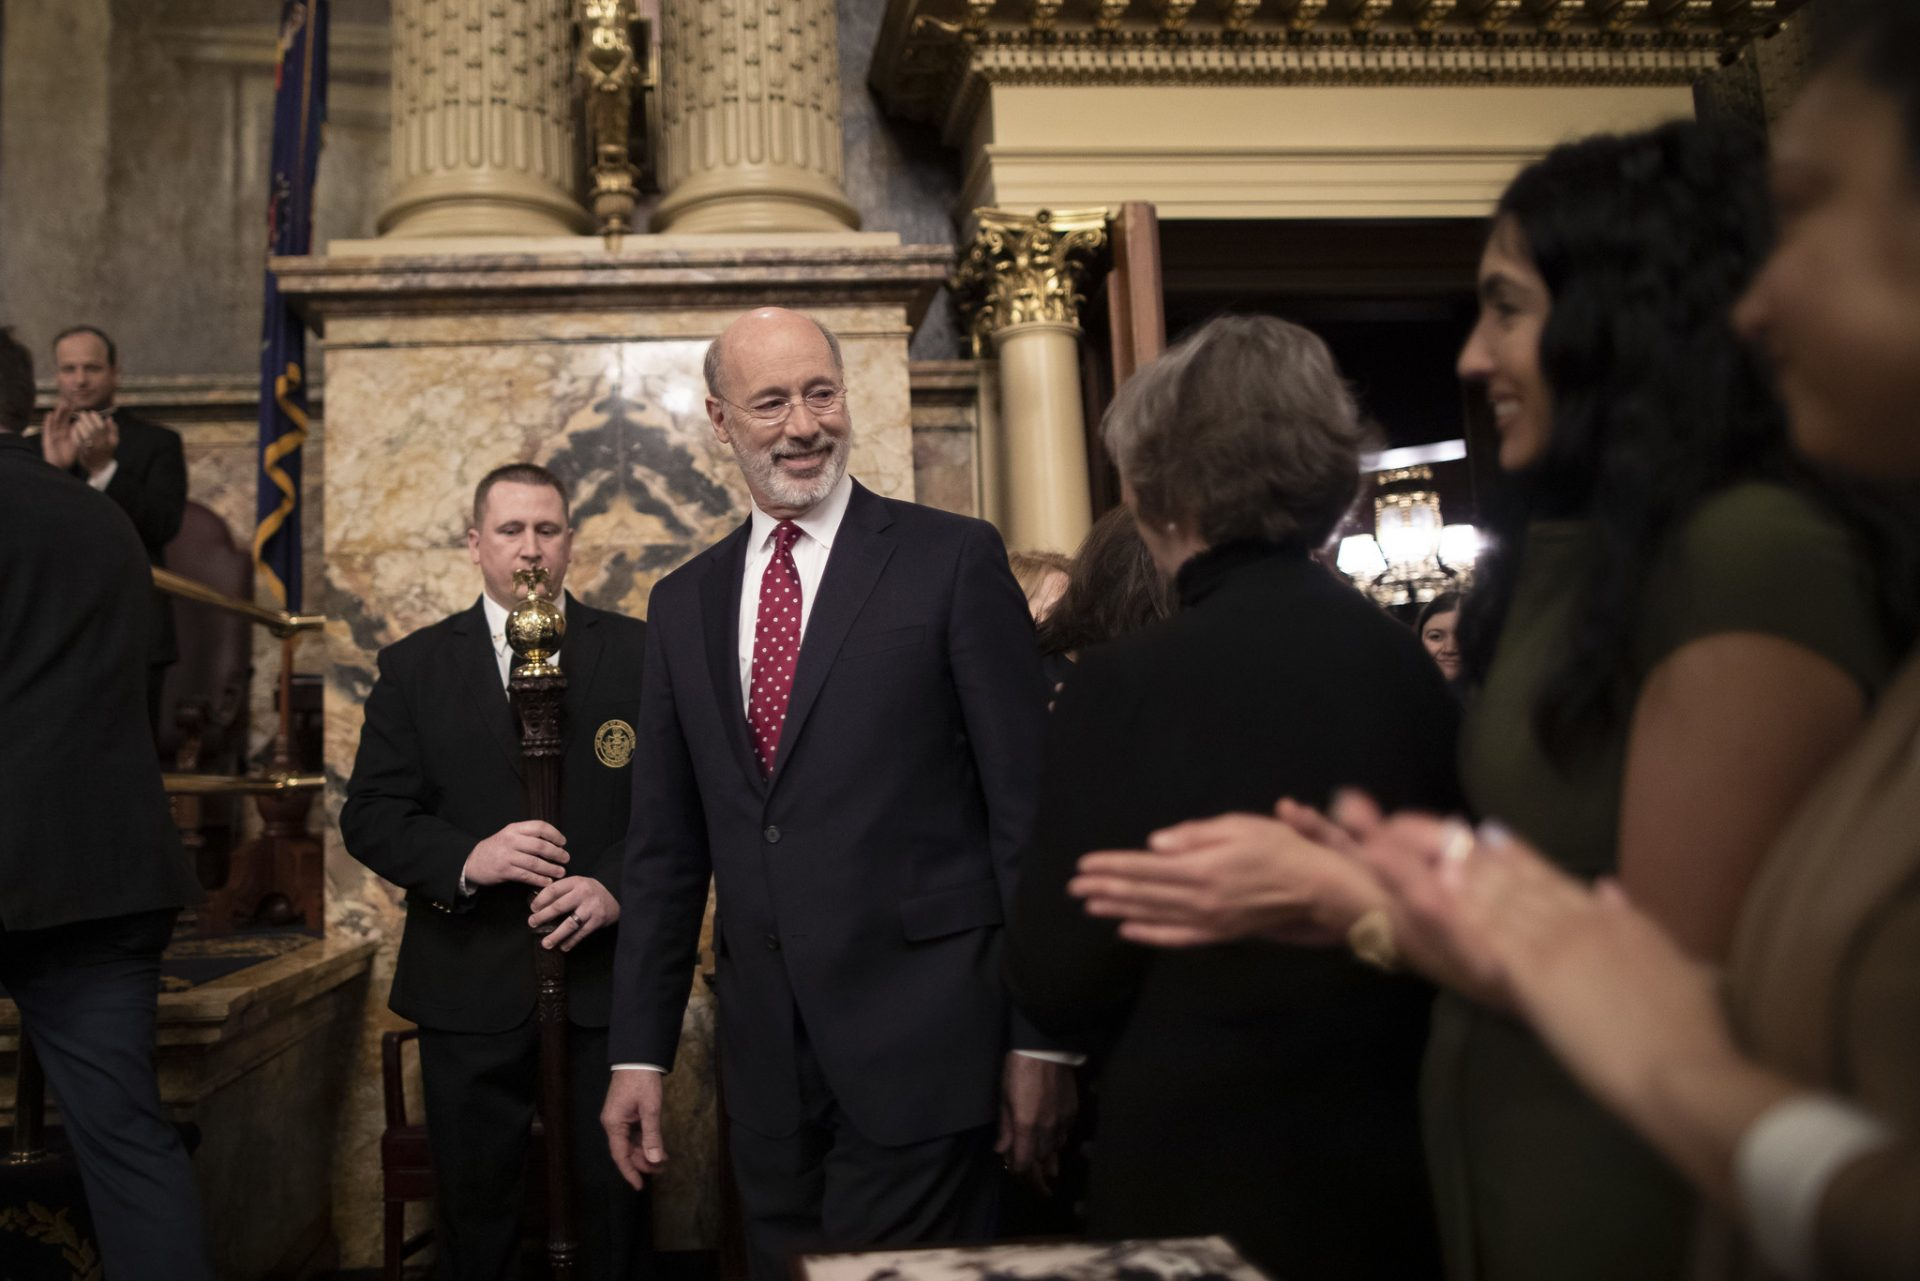 Governor Tom Wolf arrives at the Capitol to deliver his 2020-21 budget address on Tuesday, February 4, 2019.